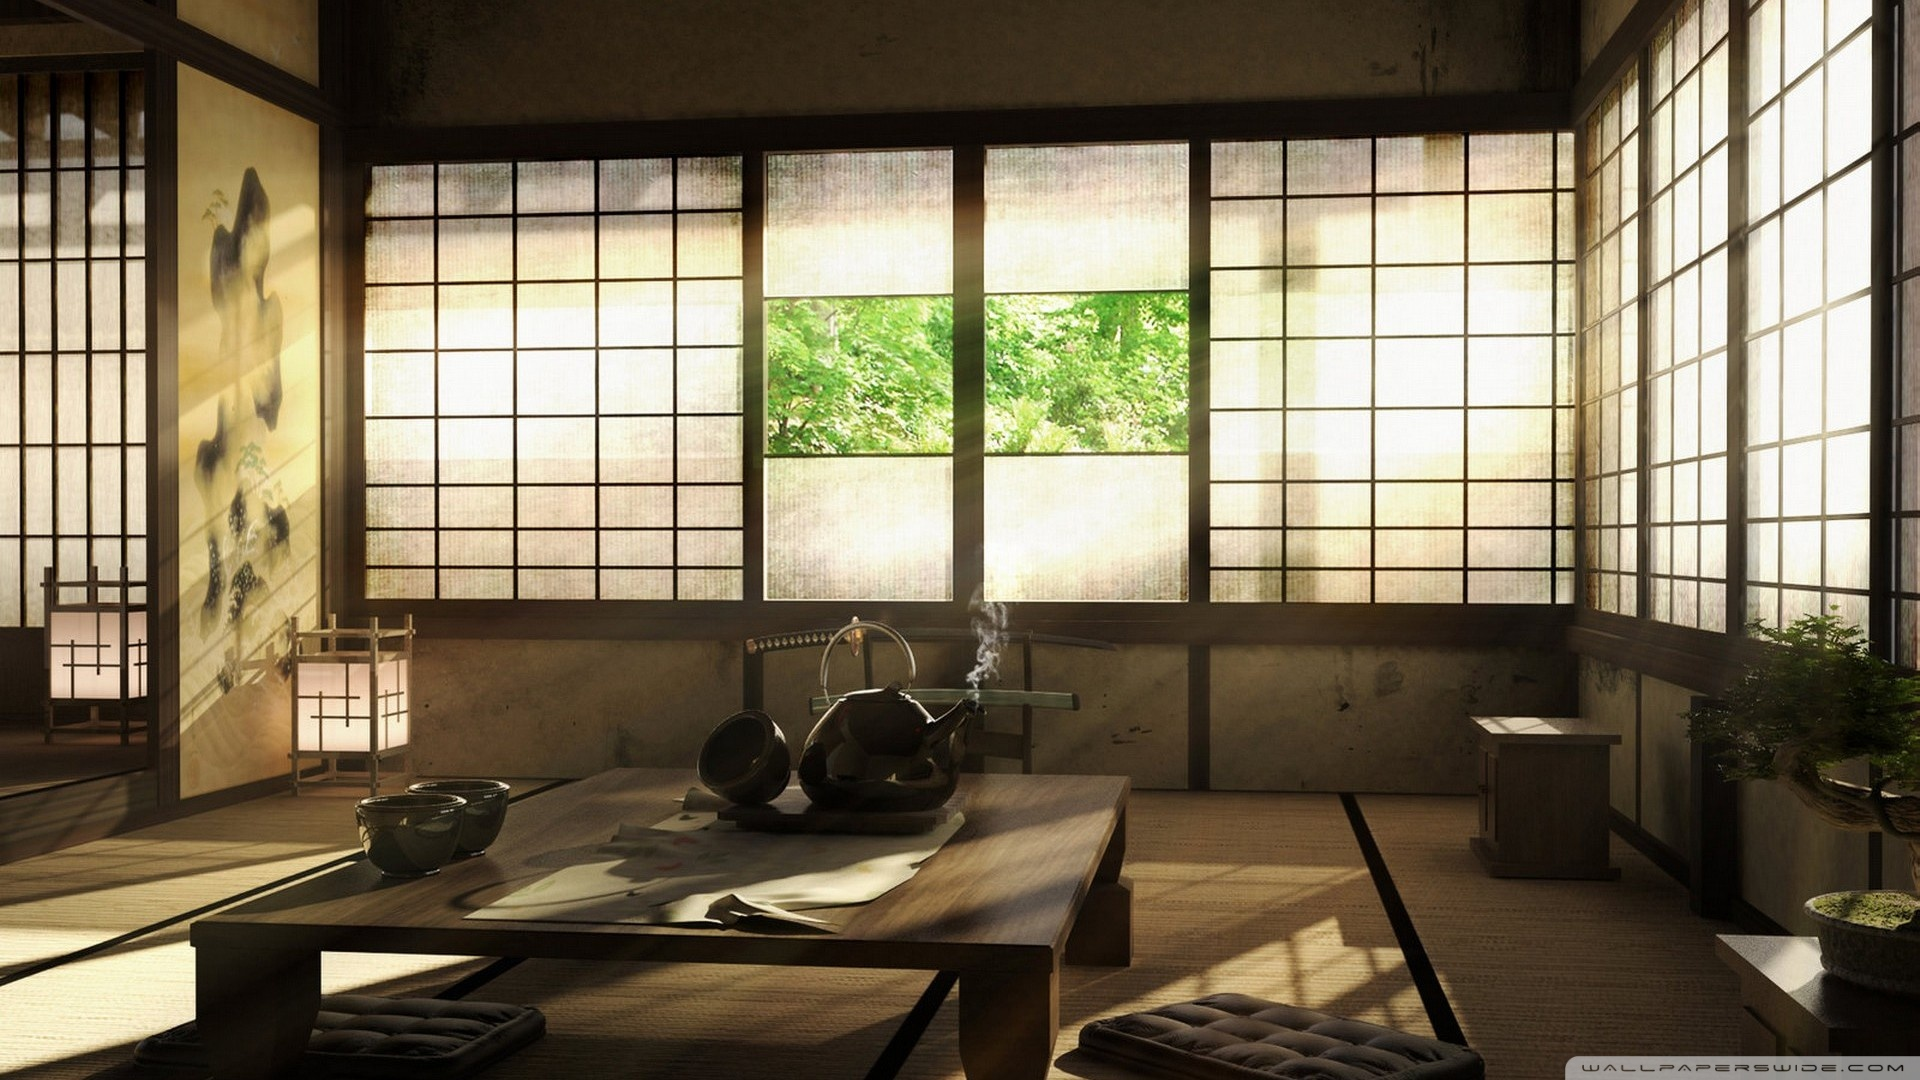 japan-room-1920x1080-1920%C3%971080-wallpaper-wpc9006719